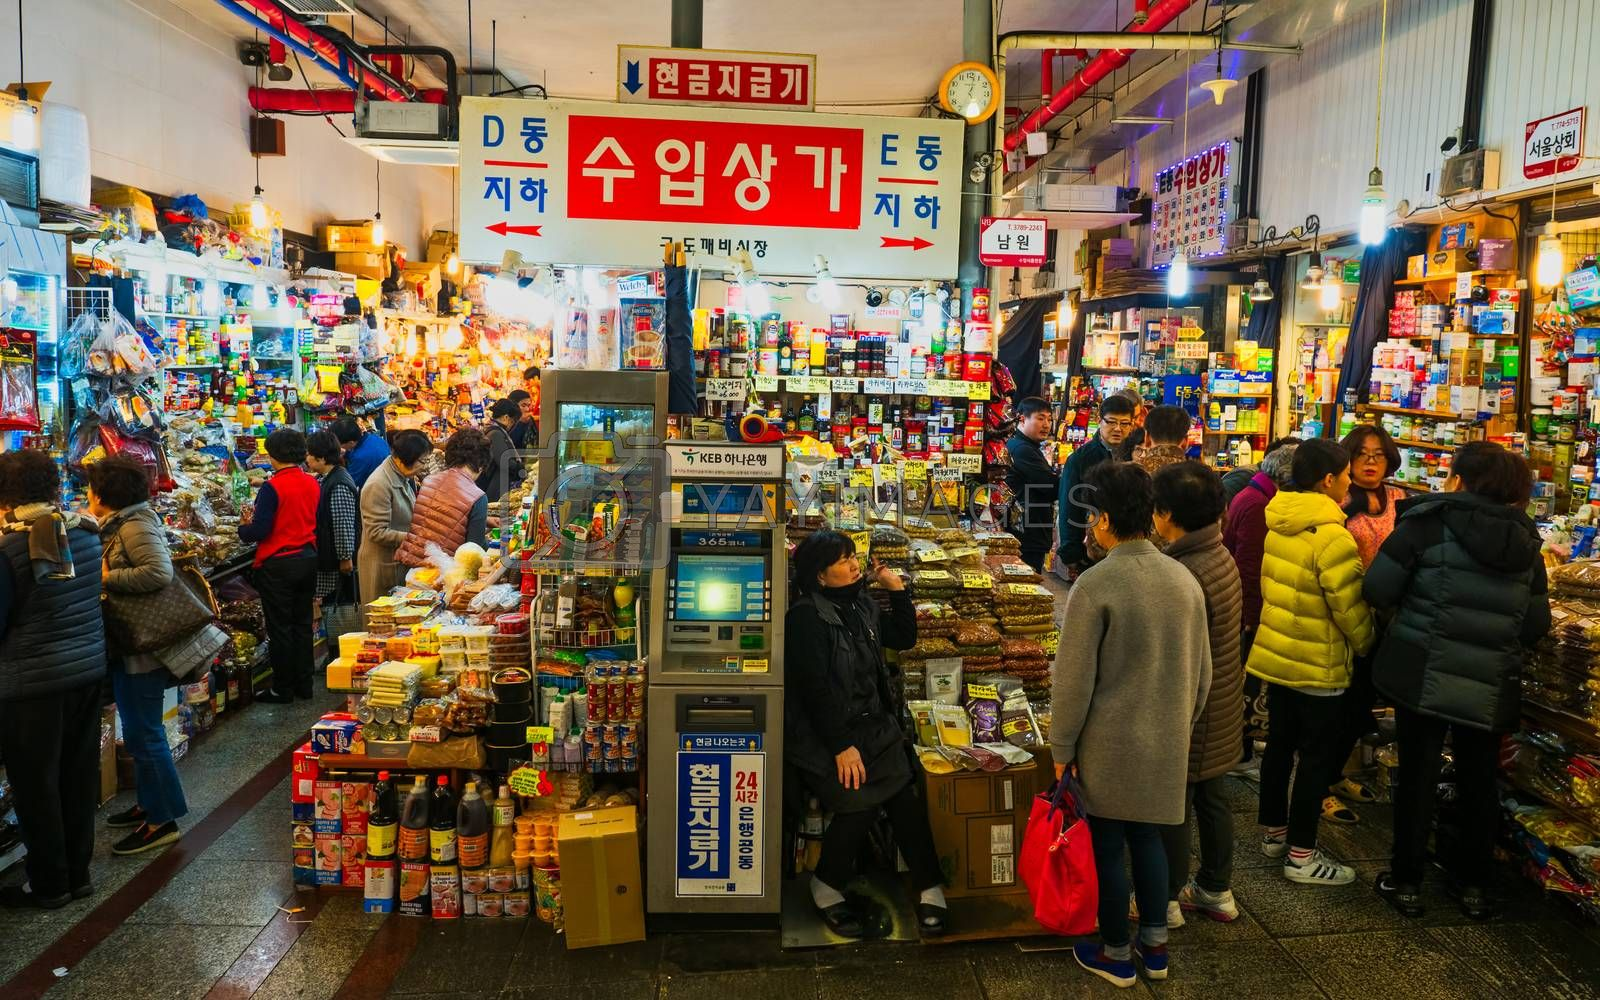 seoul, south korea - 11th november 2017: crowds at the  colorful traditional grocery market selling a zillion items